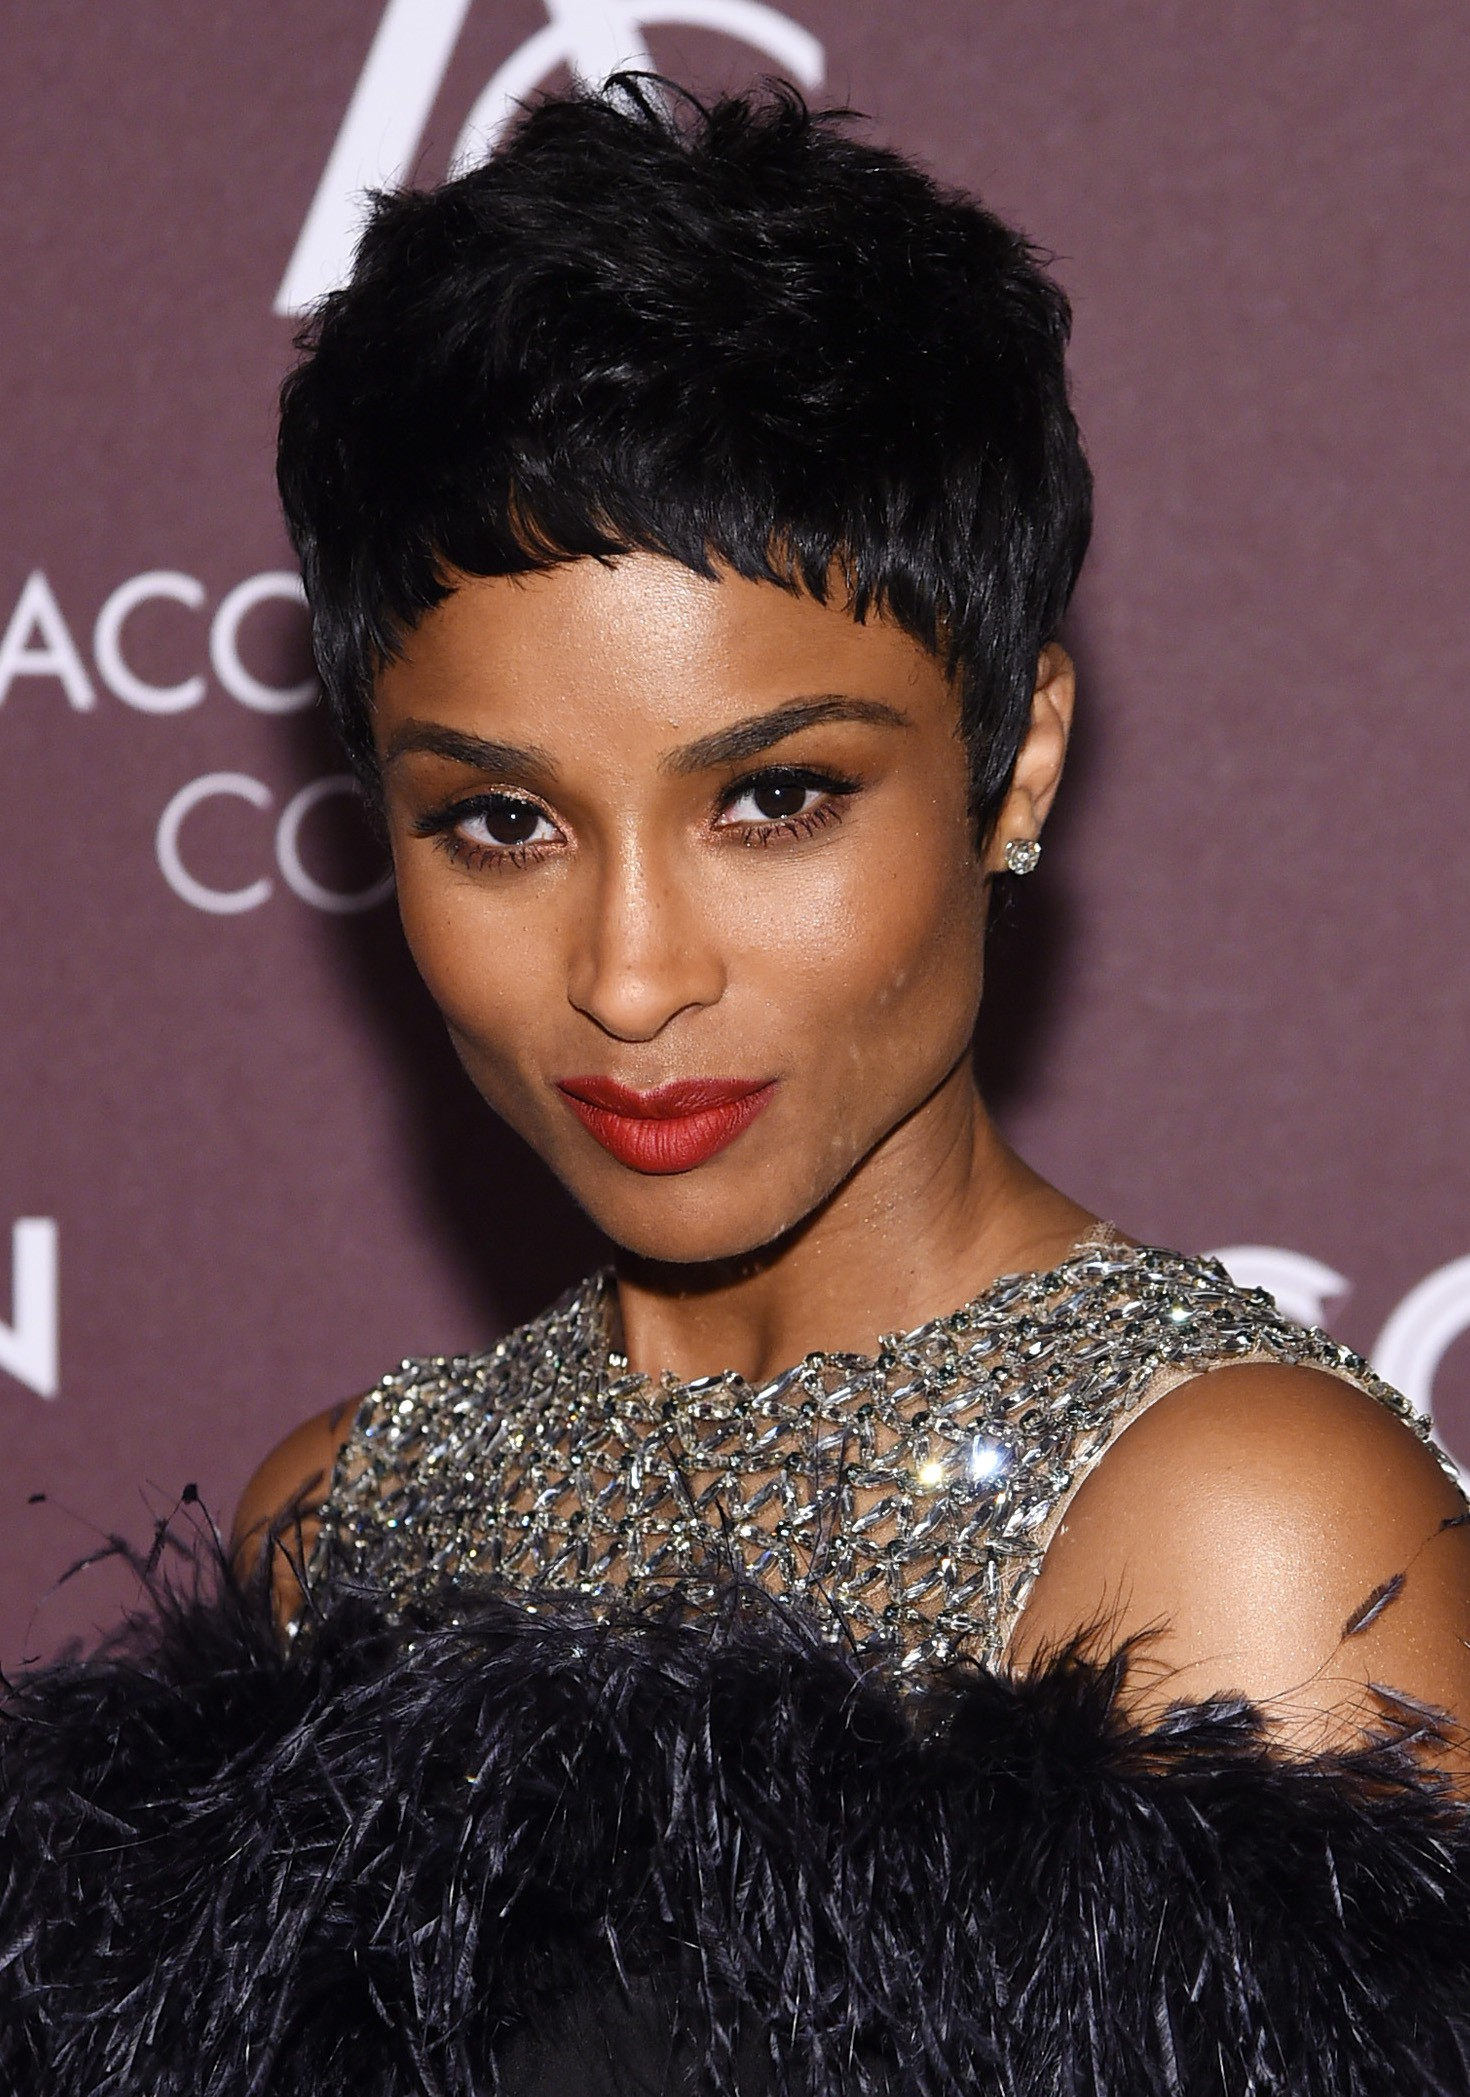 Ciara de pixie cut no ACE Awards (Foto: Getty Images)